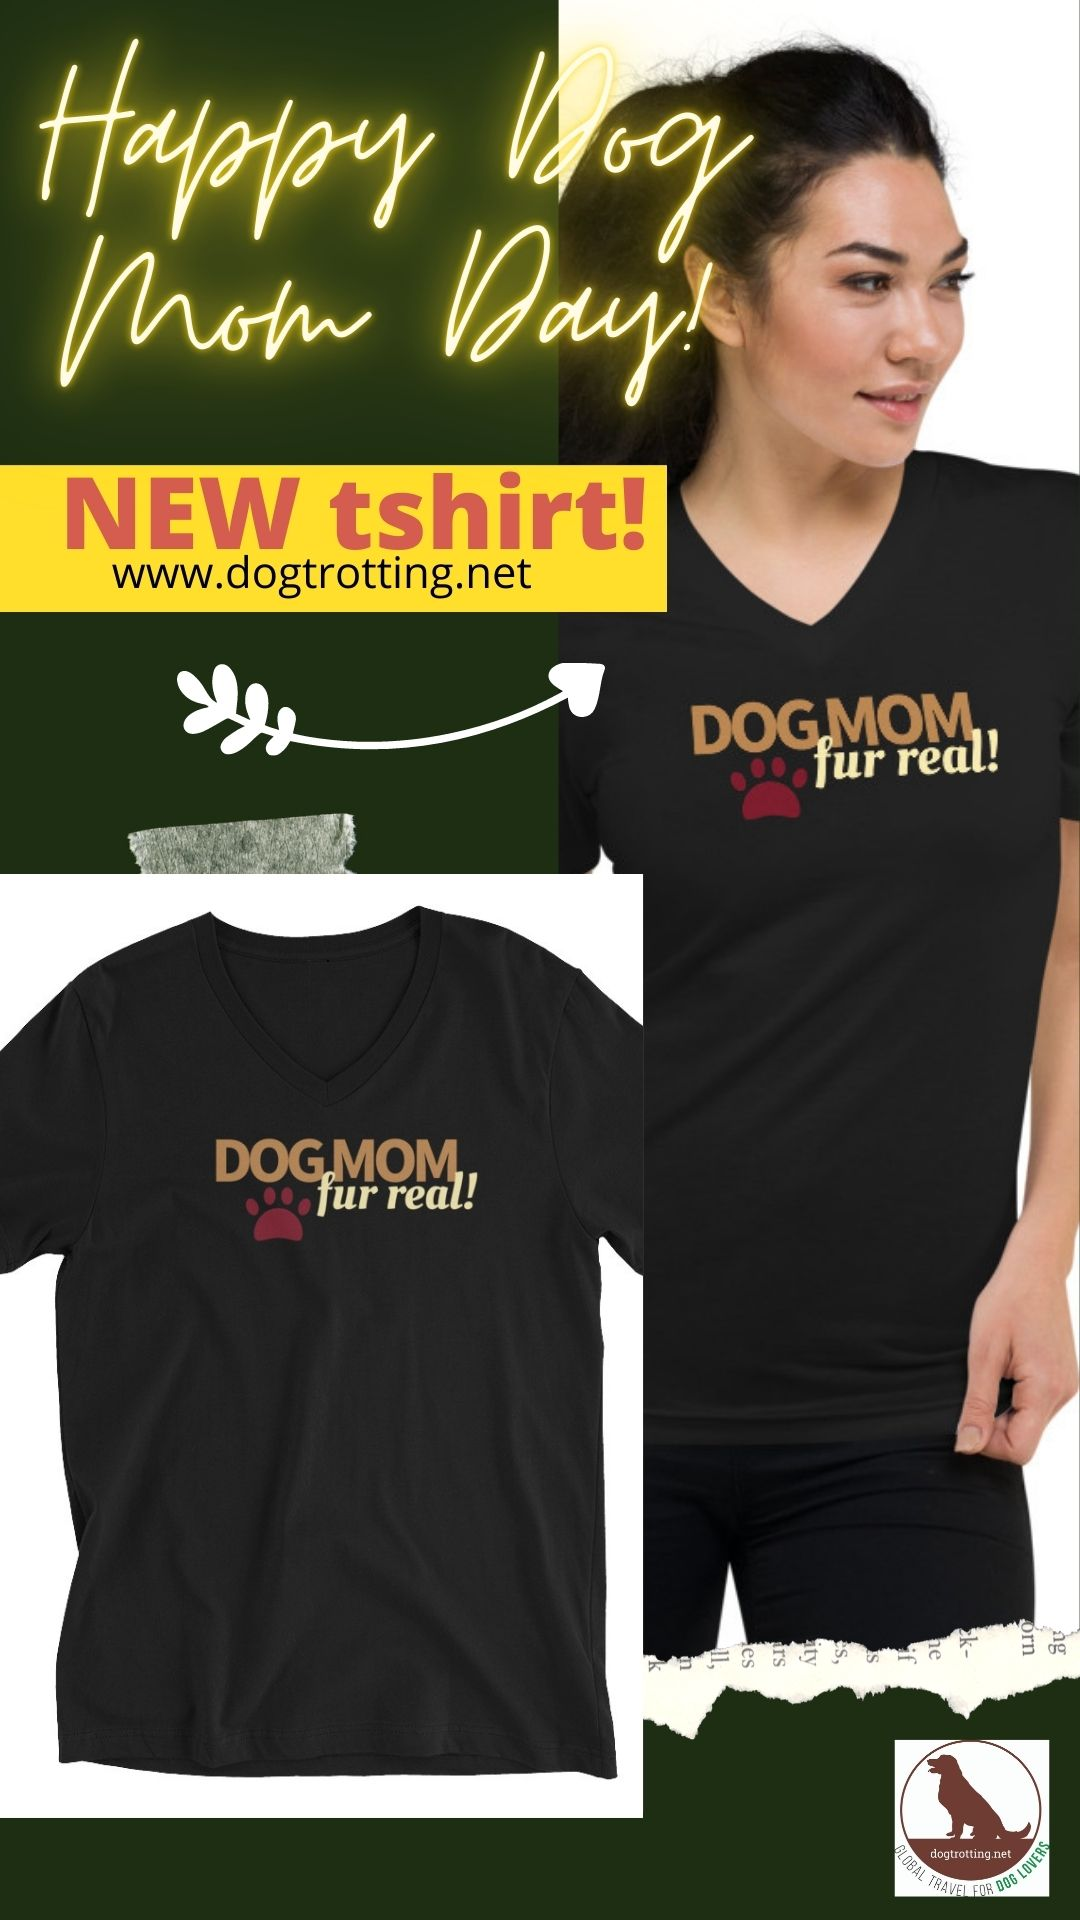 Dog Mom fur real… Happy Dog Mom Day!